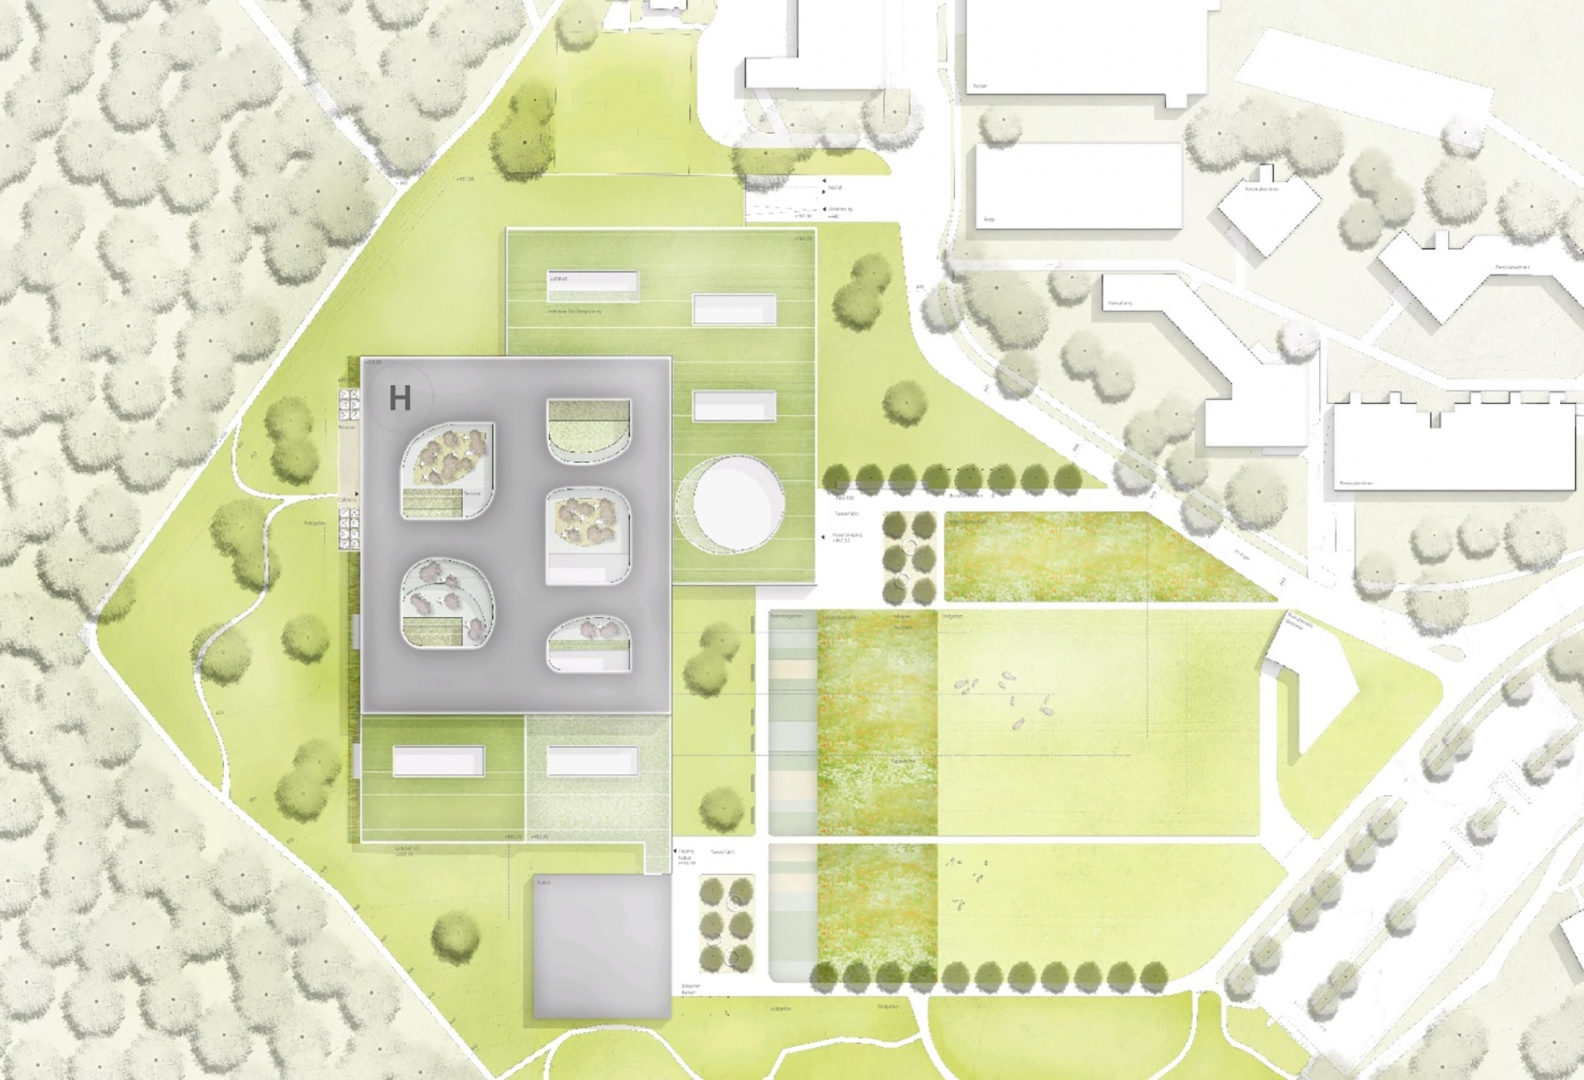 Situationsplan © Nickl & Partner Architekten